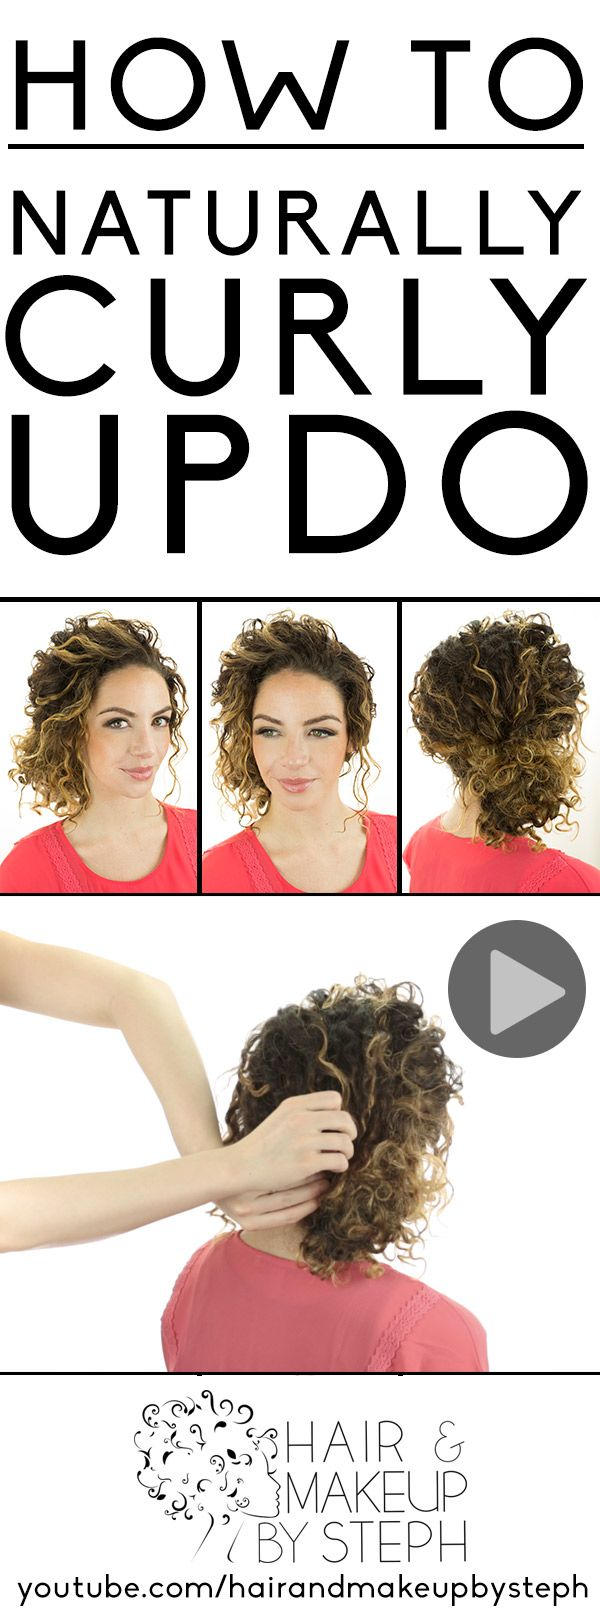 Styling tips and video tutorial for a naturally curly updo. #naturalcurls Got to try this! For Erin